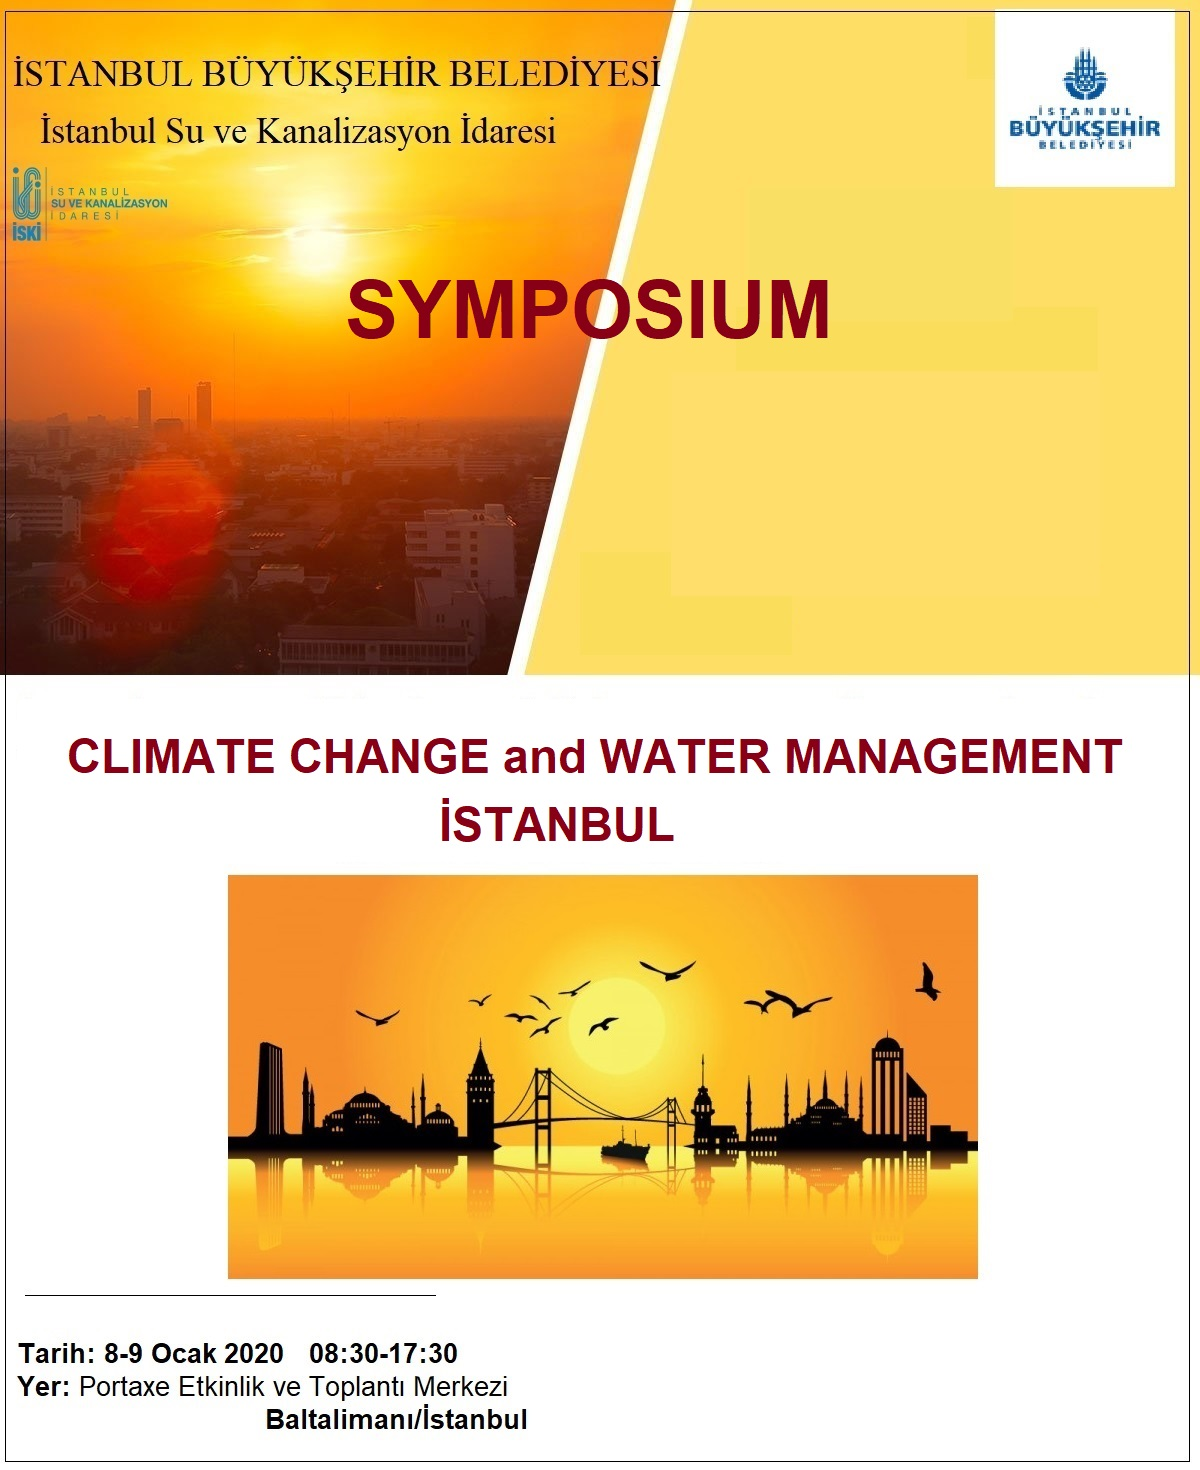 HPA Participated in Istanbul  Climate Change and Water Management Symposium held on 8_9  January 2020